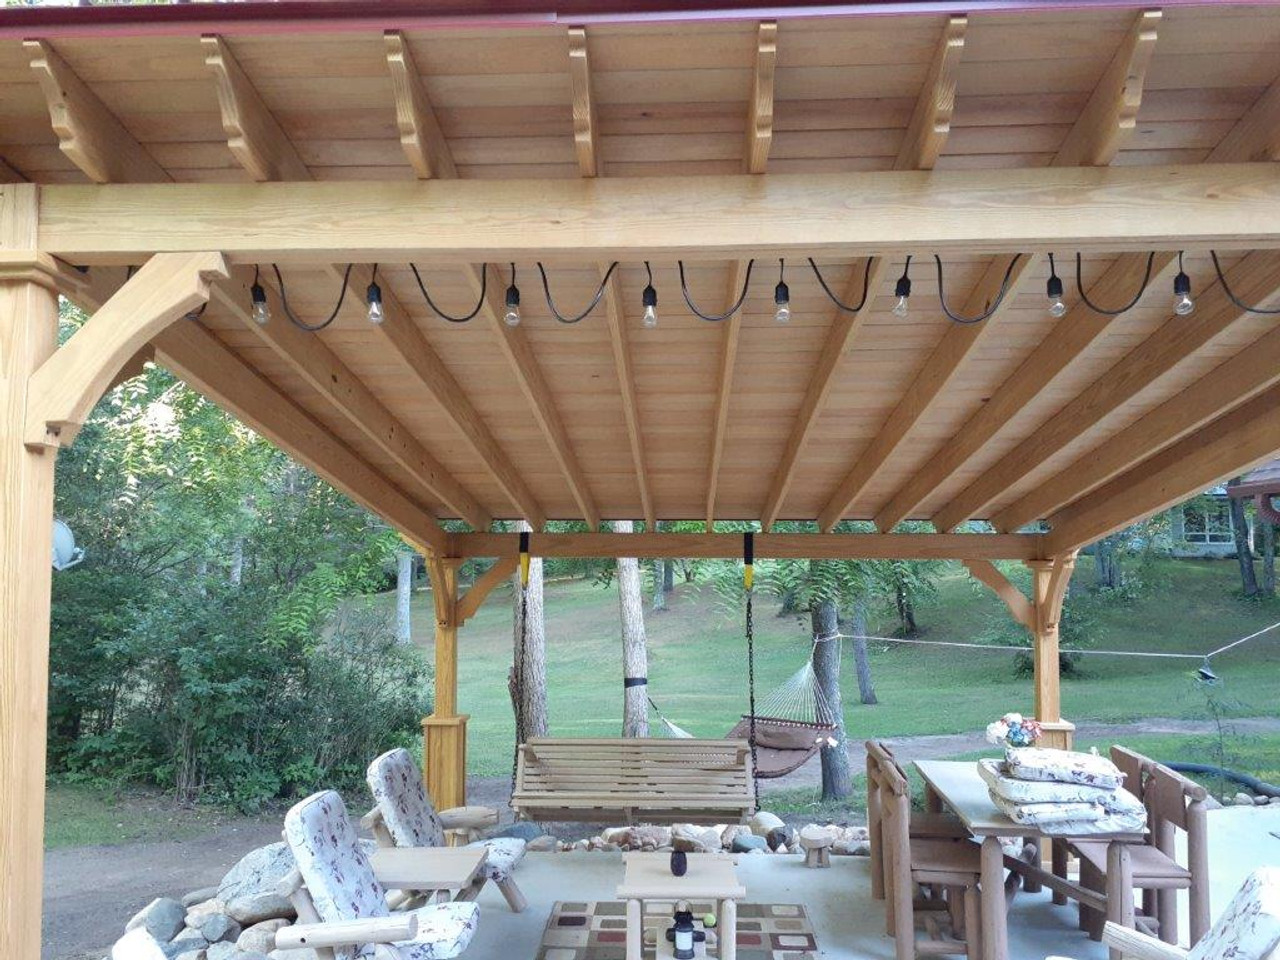 Tongue and groove roof decking on a 14x16 pressure treated Lean-To Pavilion, maple color staining, Crivitz Wisconsin